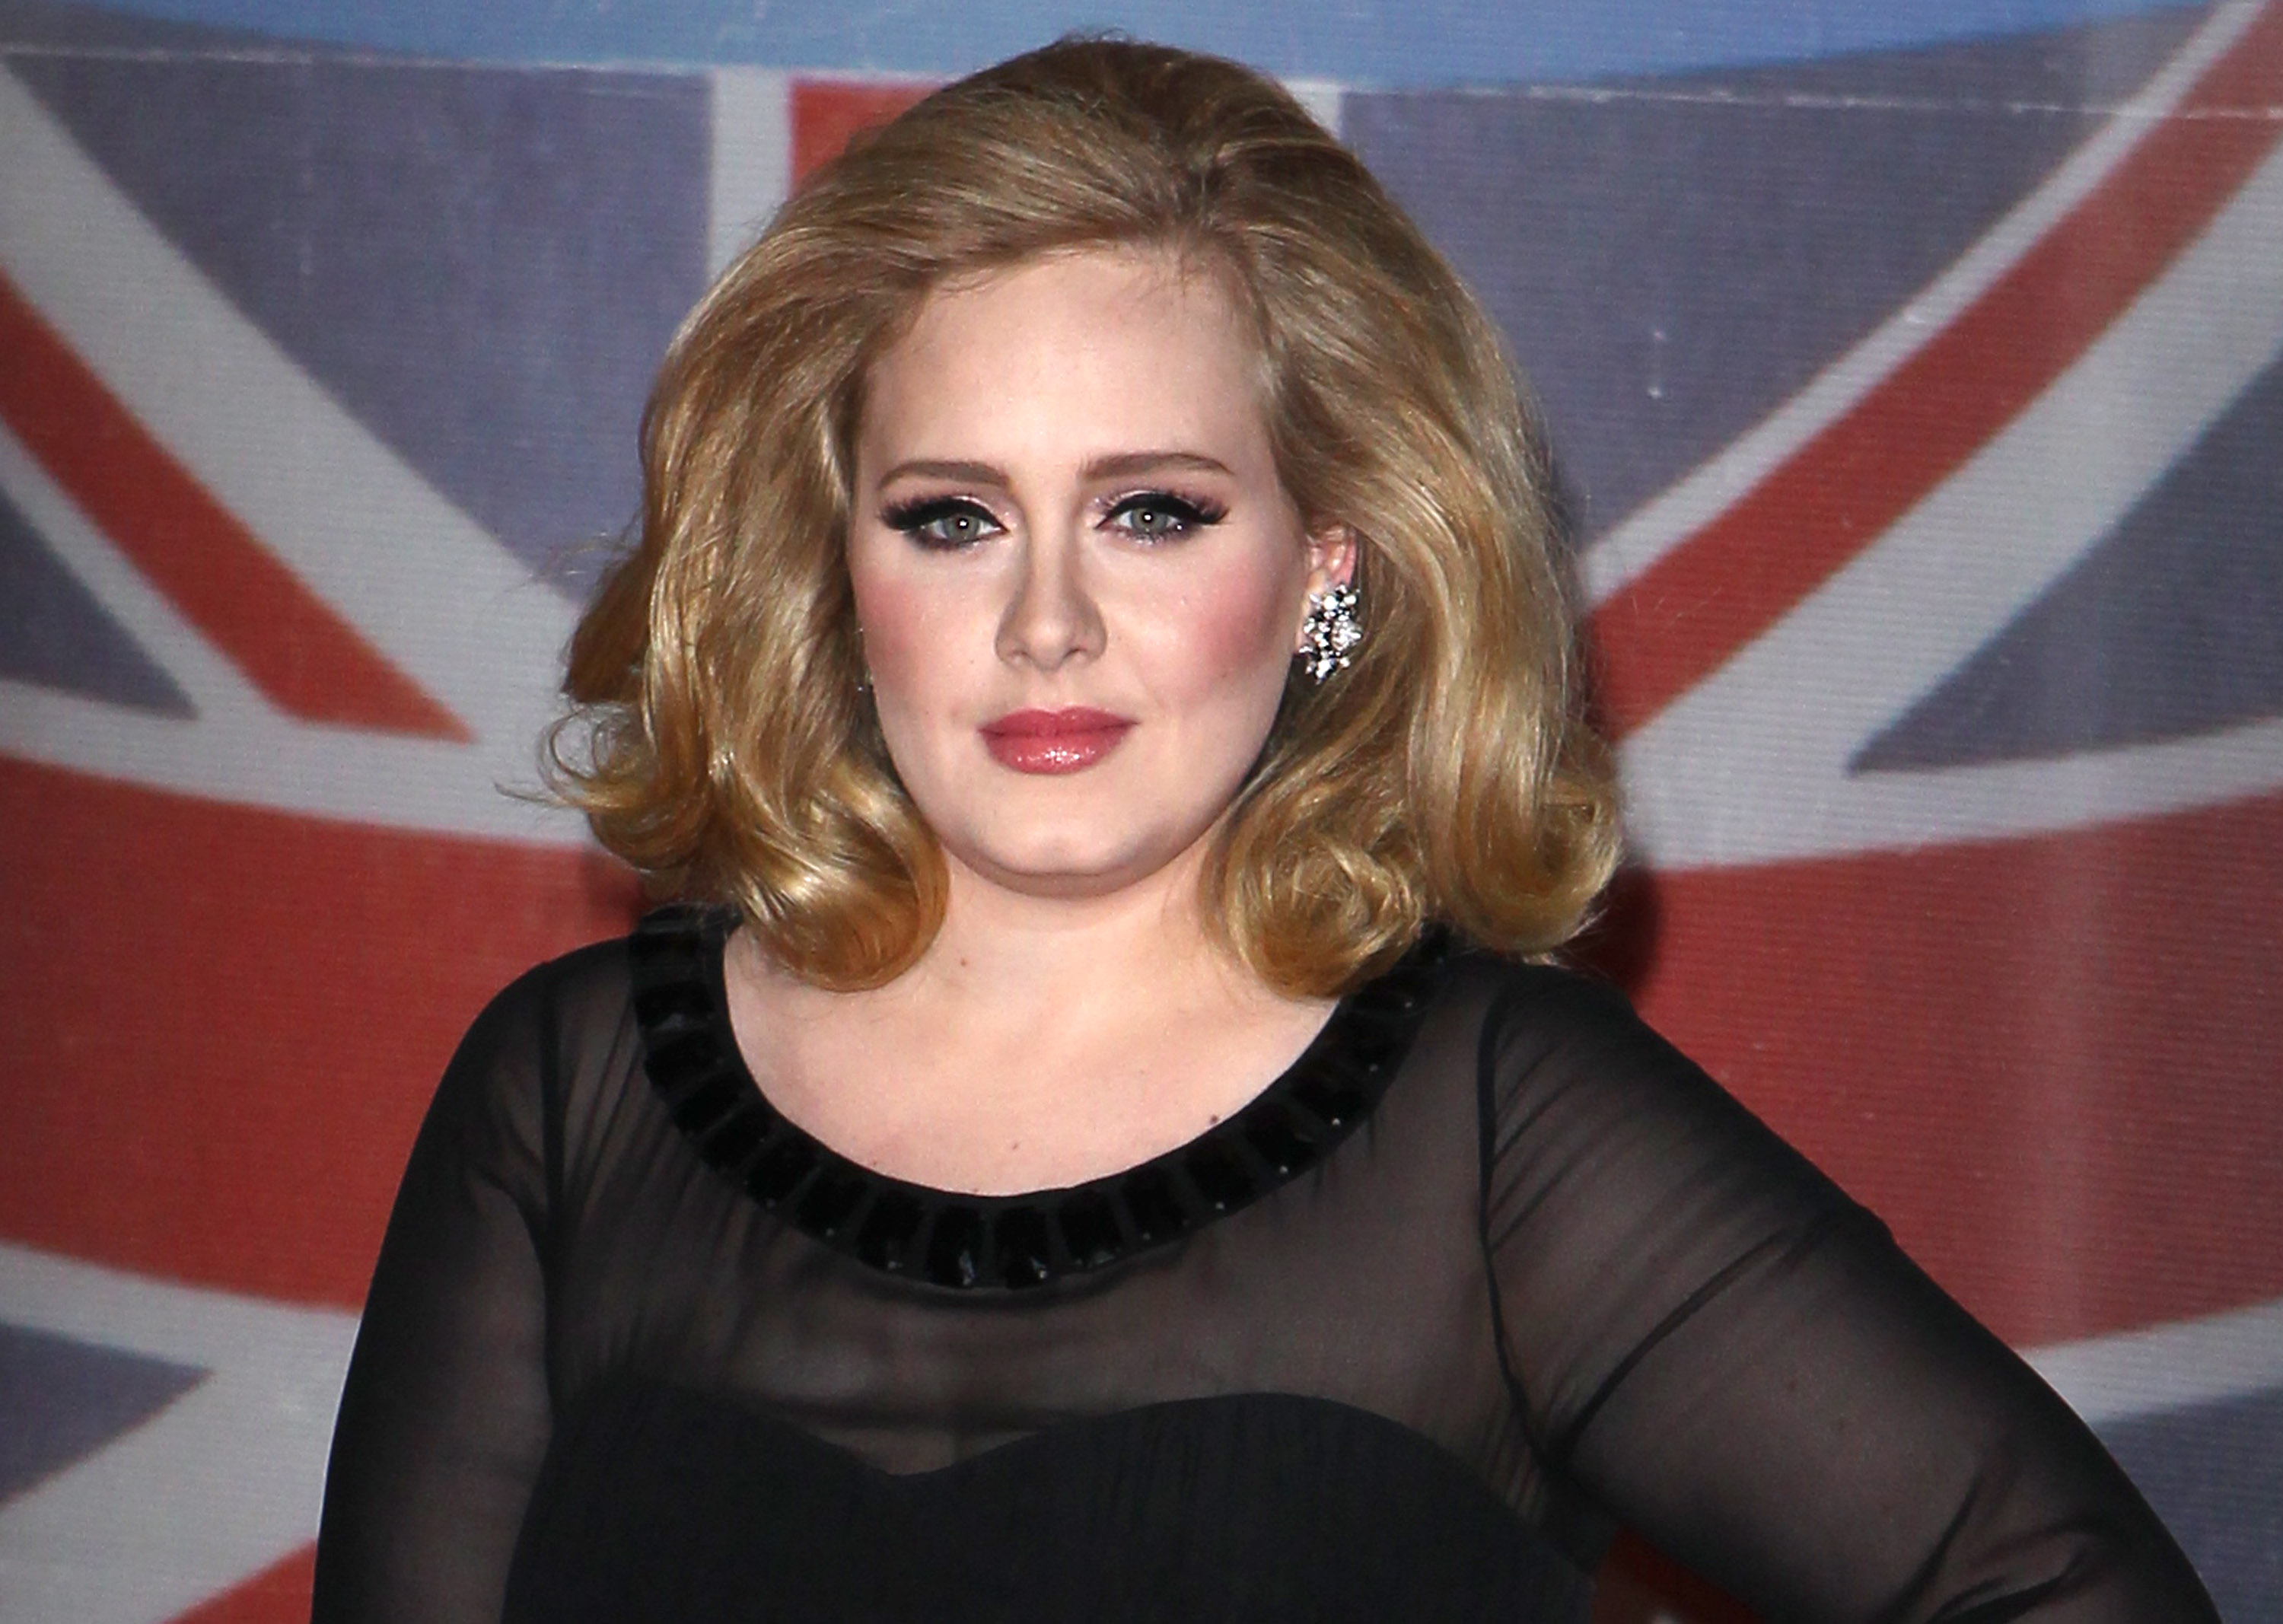 Adele attends the BRIT Awards 2012 at 02 Arena on Feb. 21, 2012 in London.